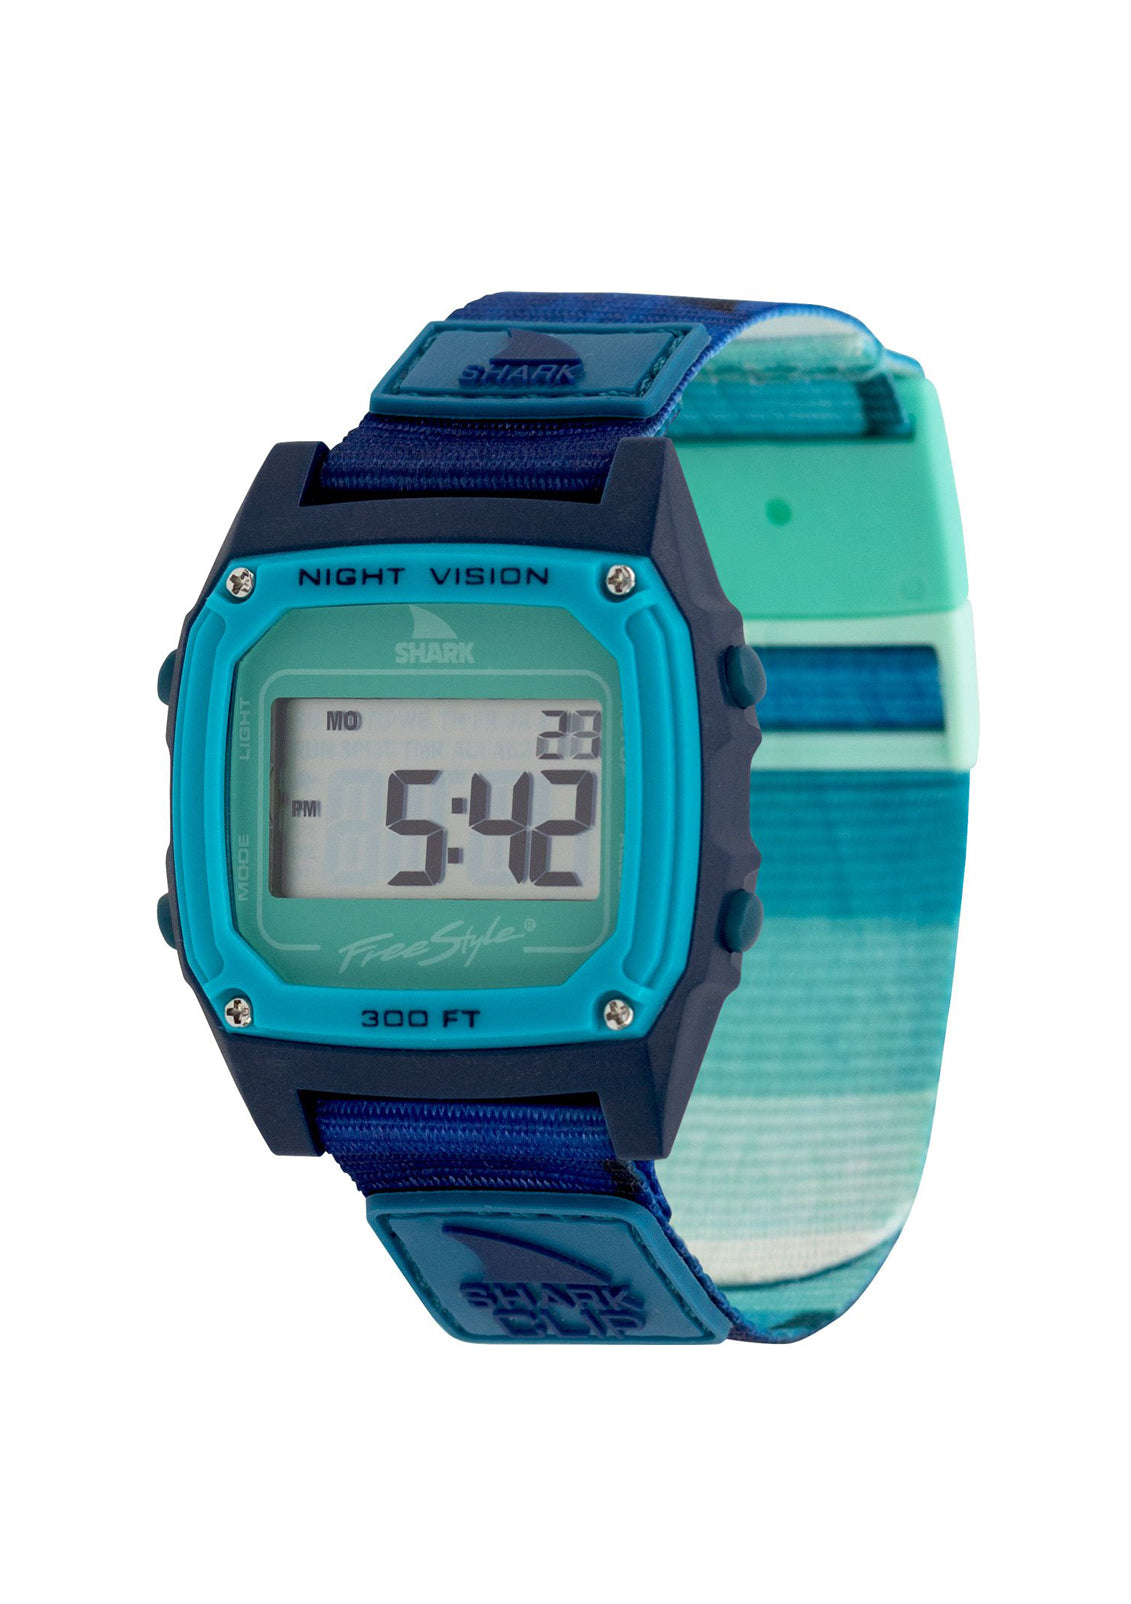 Shark Classic Clip Watch Ombre Fin Teal